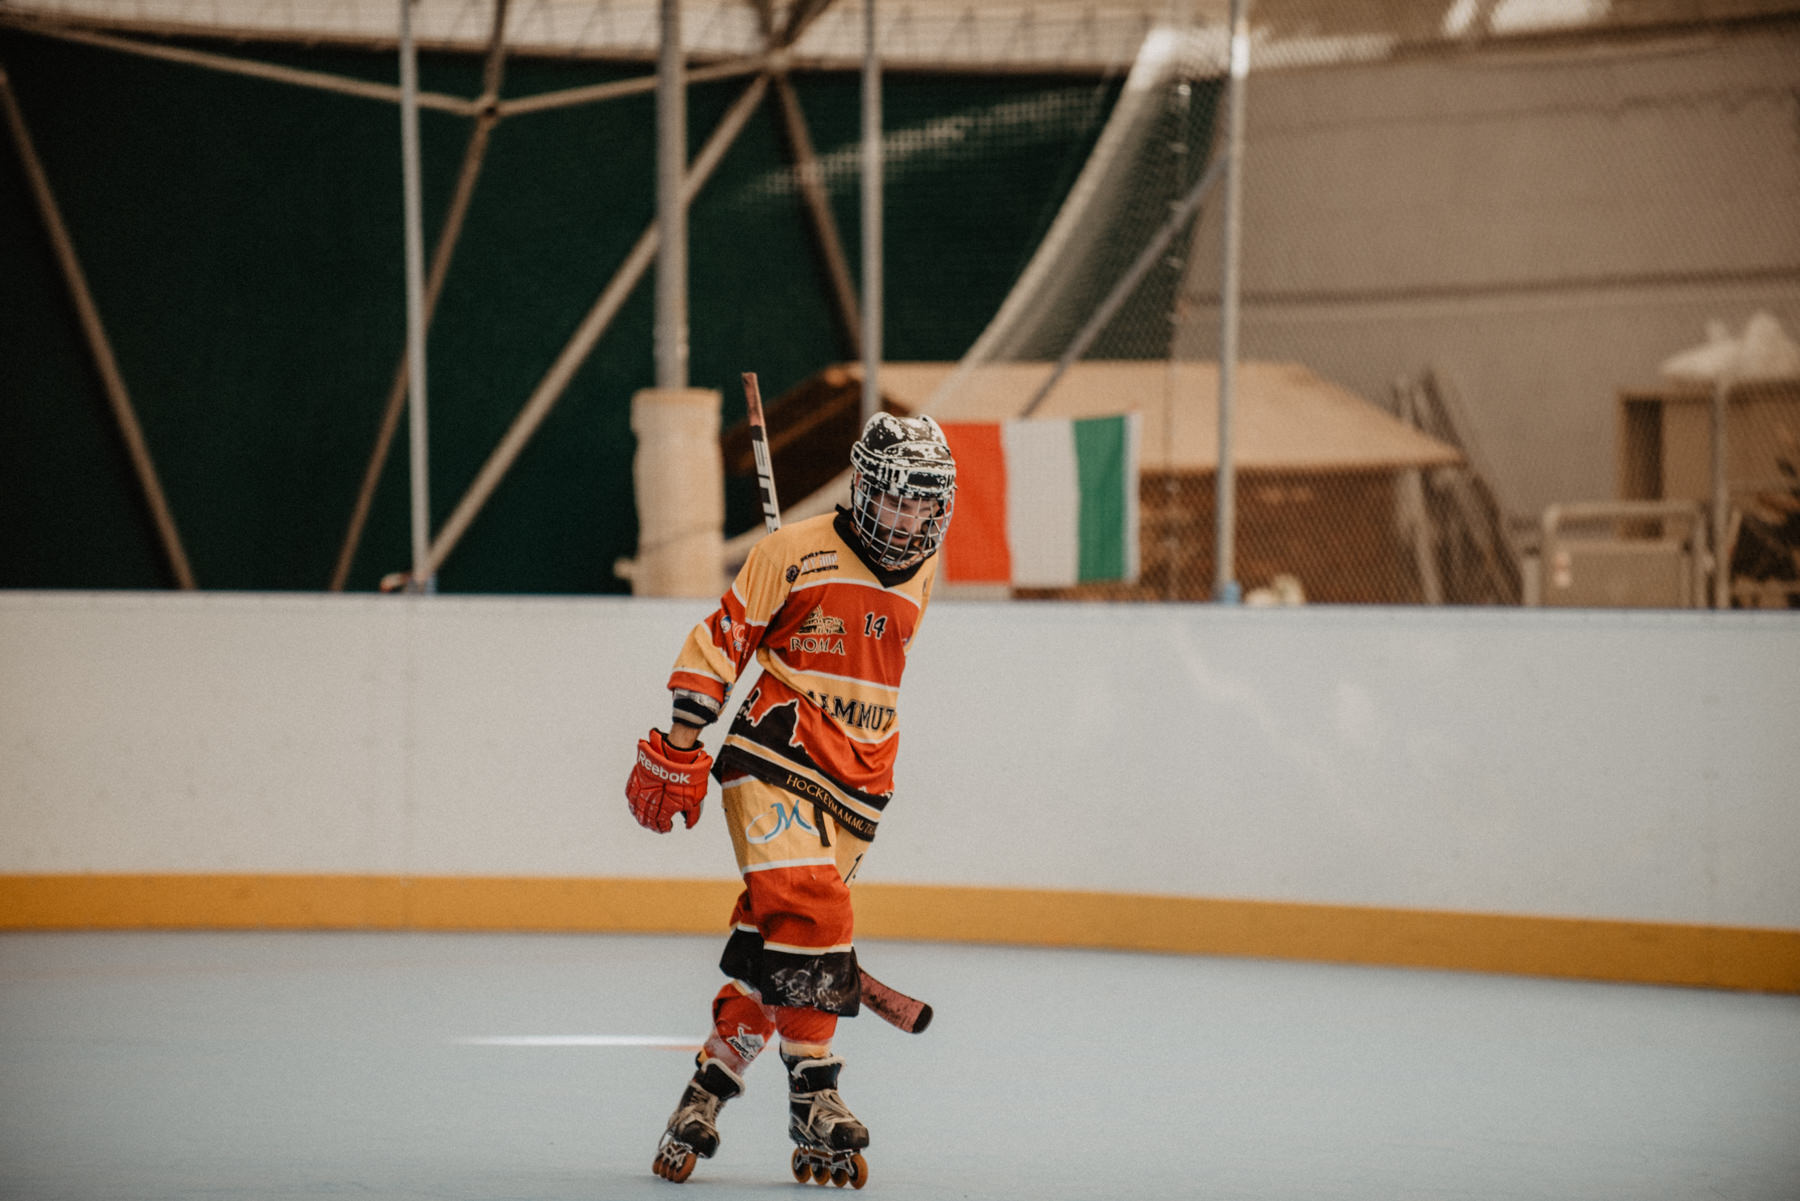 hockey roma, inline hockey roma, mammuth hockey, mammuth roma, rita foldi photography, sports photography, firs, coppa italia